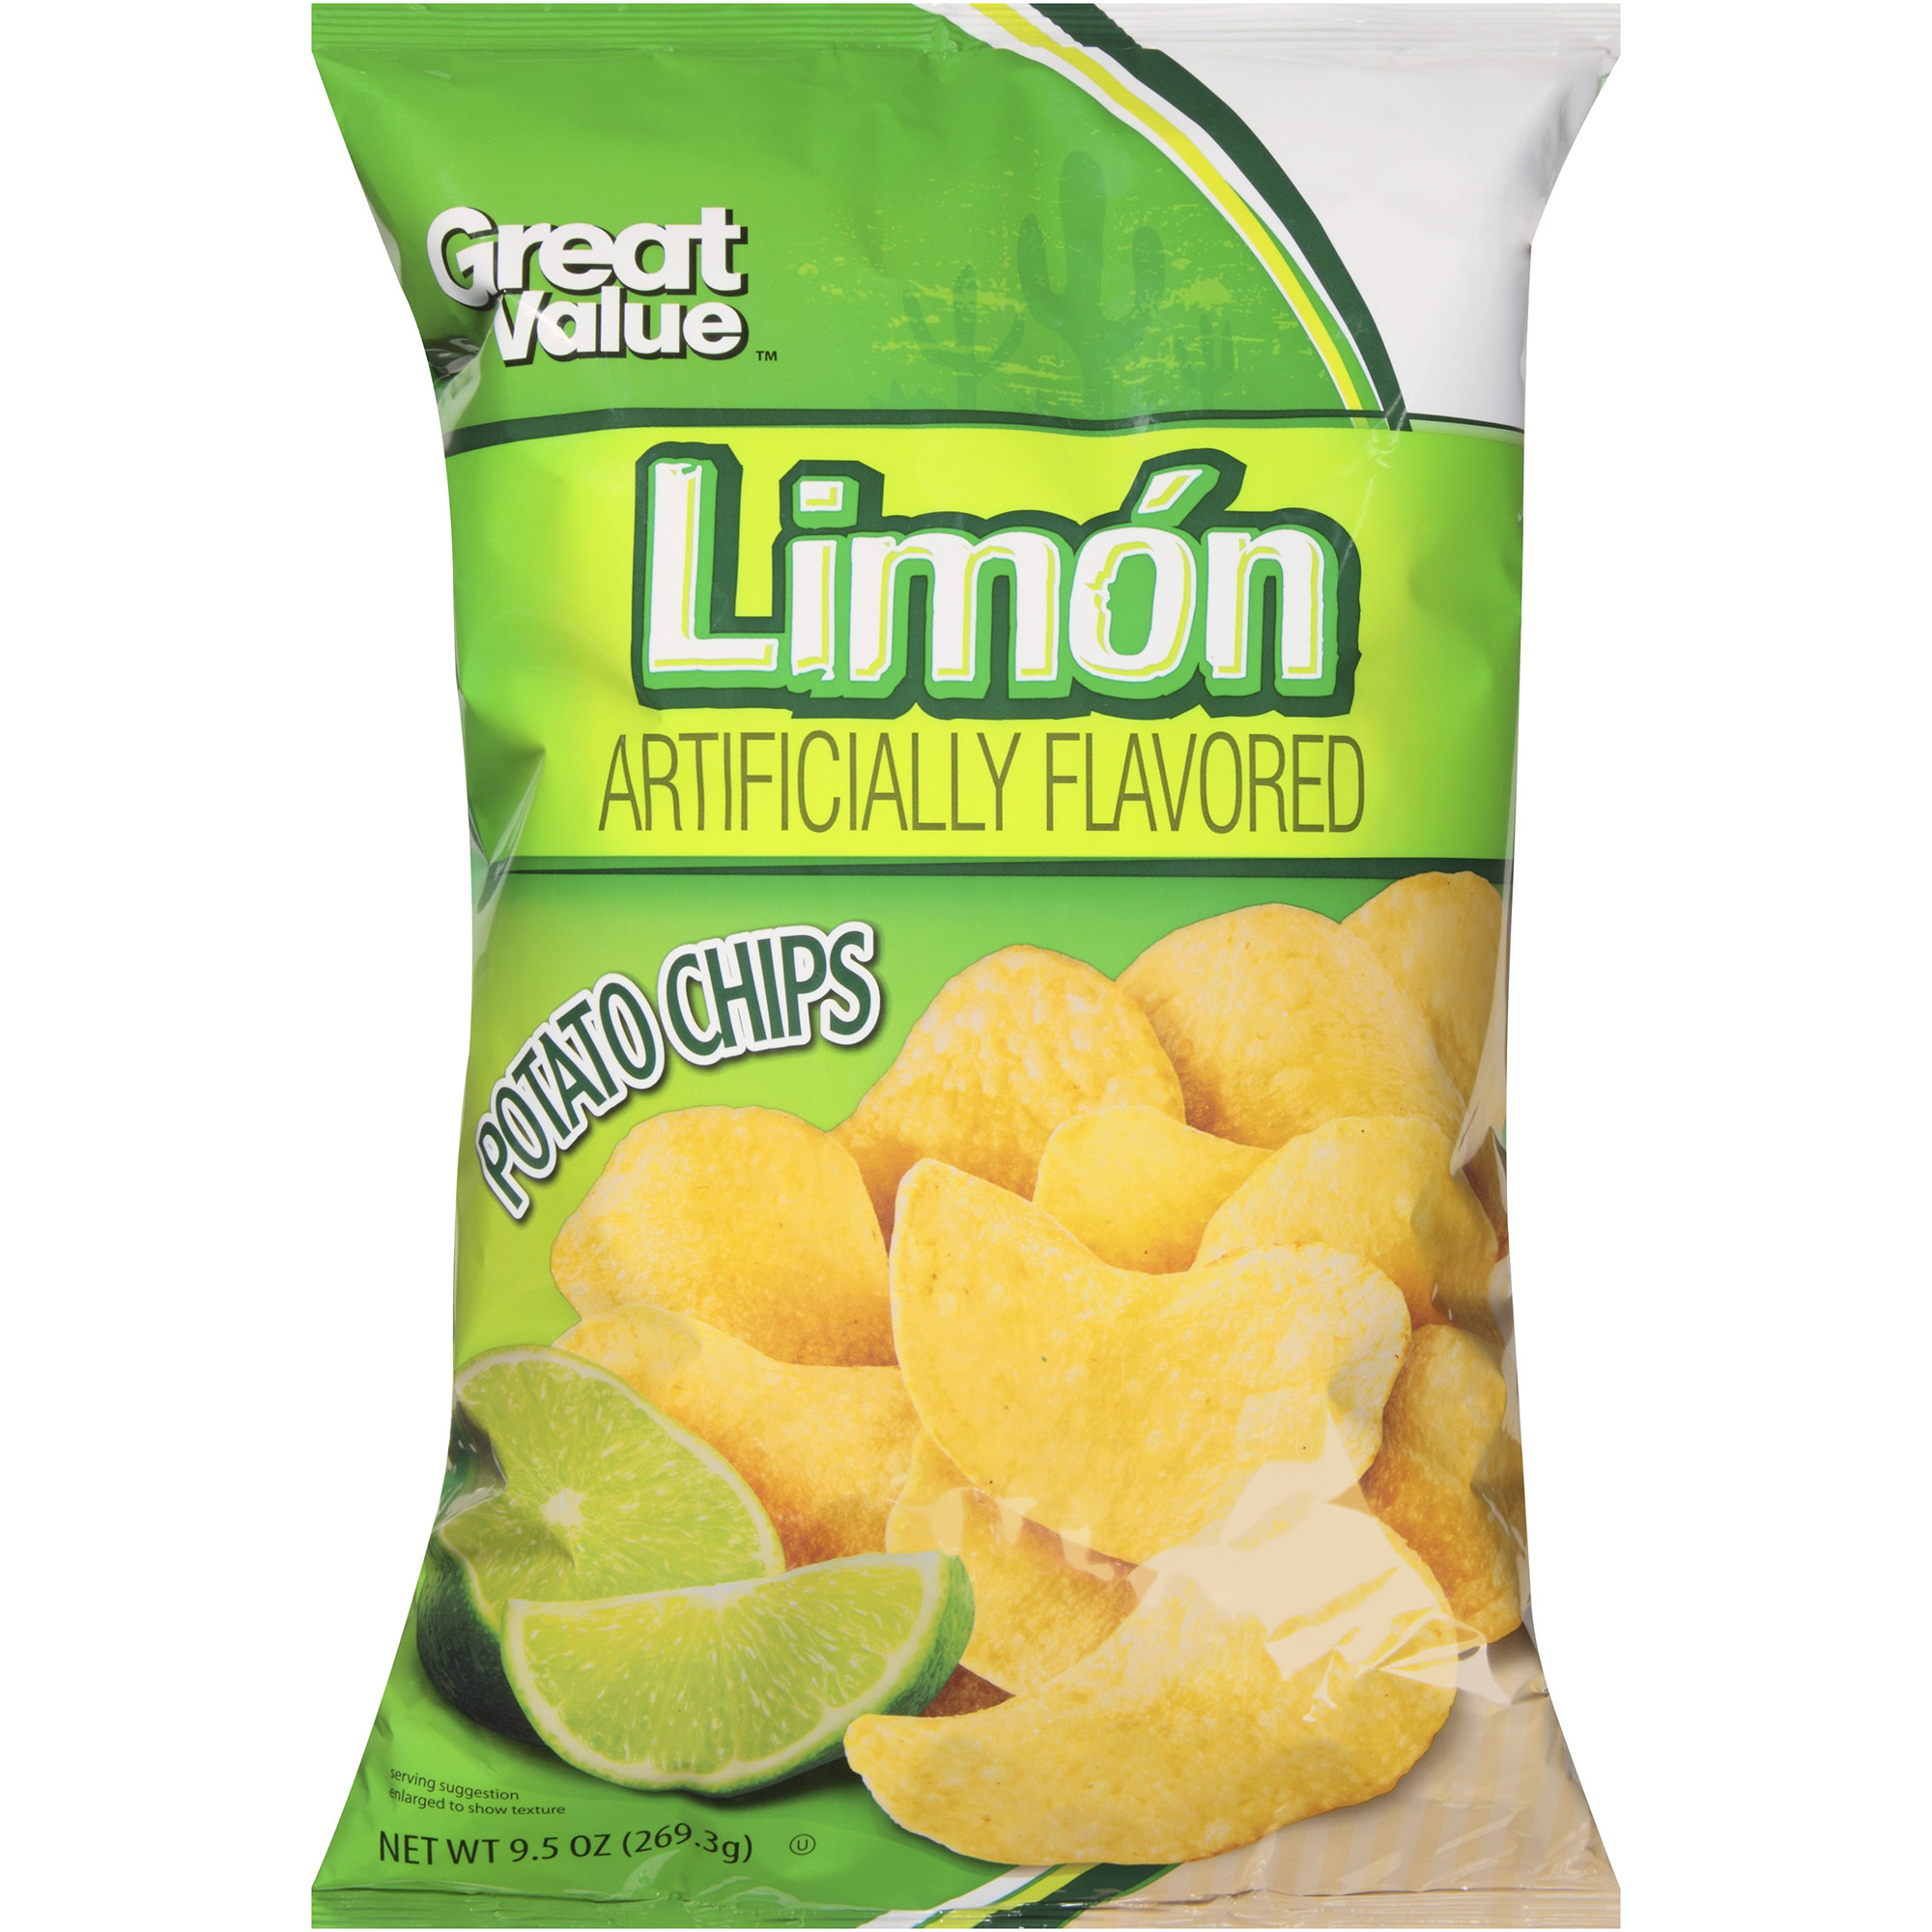 Great Value Limon Flavored Potato Chips, 9.5 Oz.